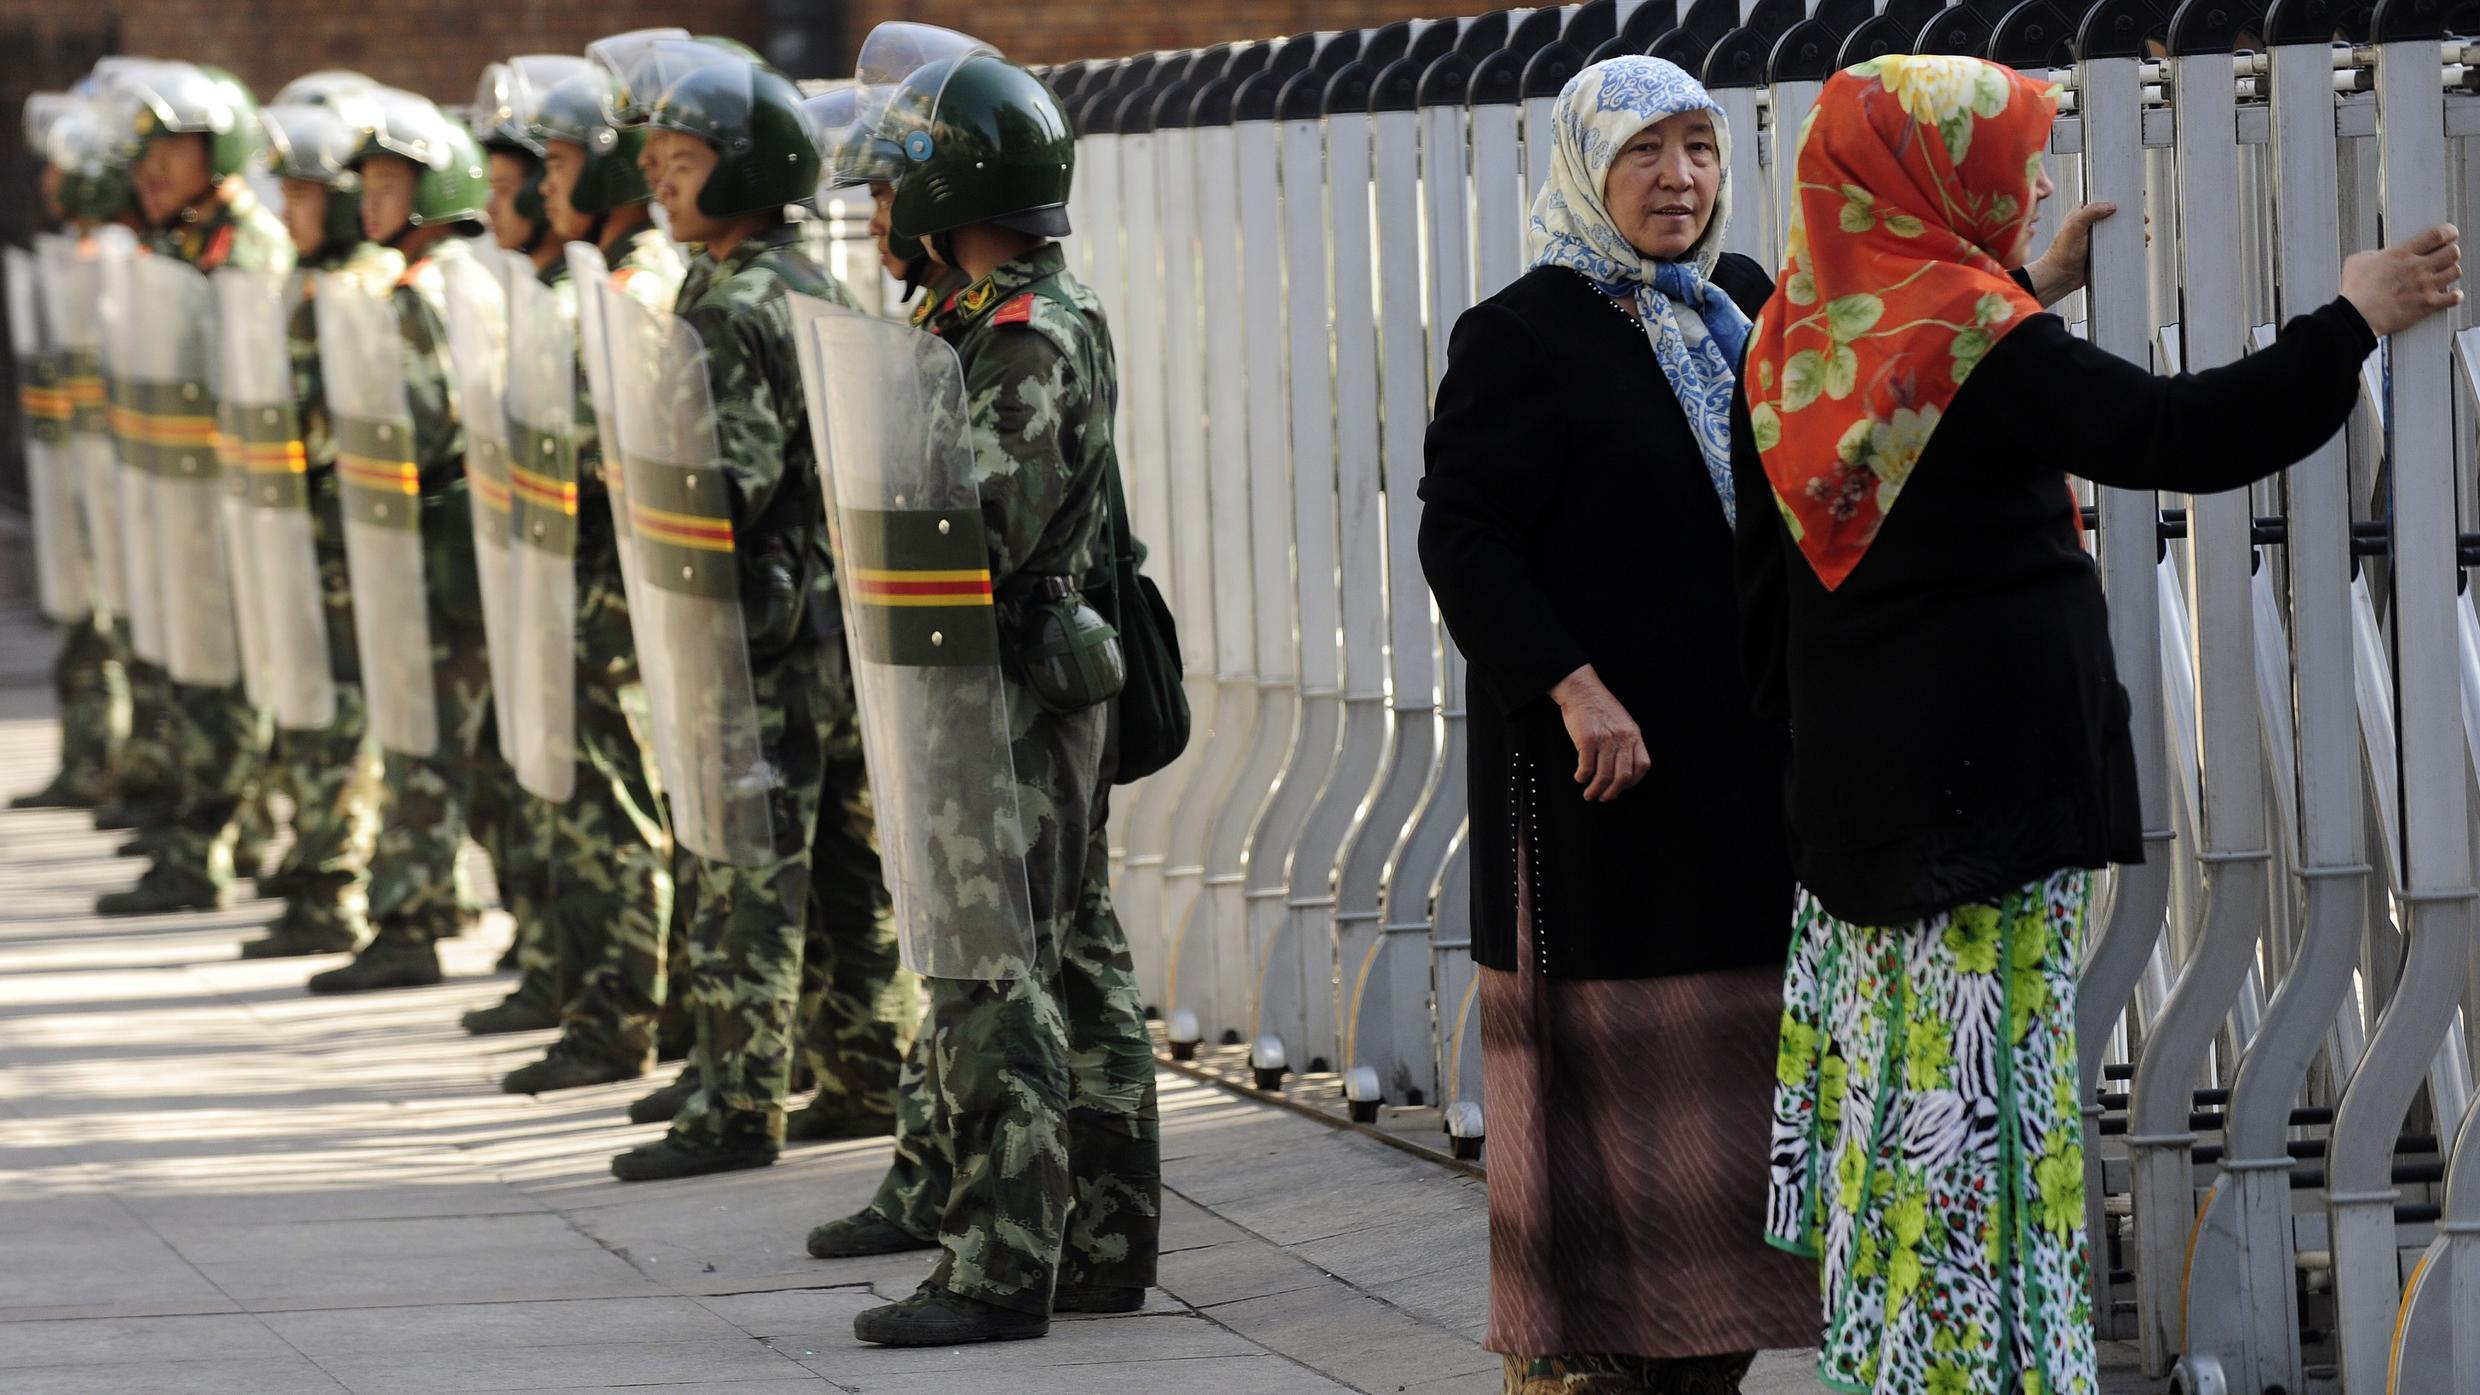 An ethnic Uighur woman looks through a security fence at the Grand Bazaar as Chinese soldiers watch in Urumqi, in China's far western region of Xinjiang on 9 July 2009.